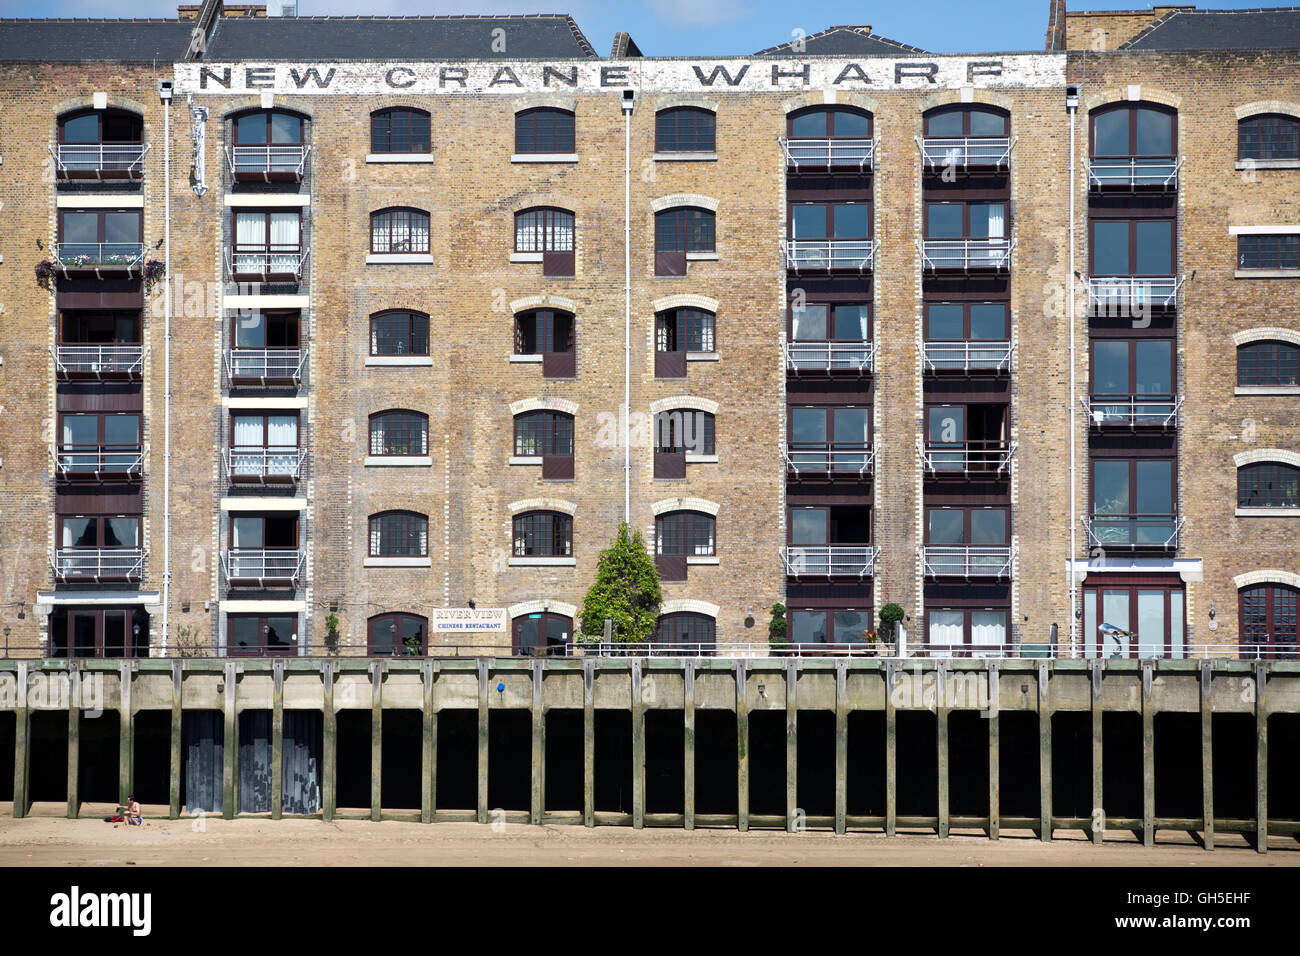 New Crane Wharf, grade II listed building in Tower Hamlets, Greater London, England, UK - Stock Image